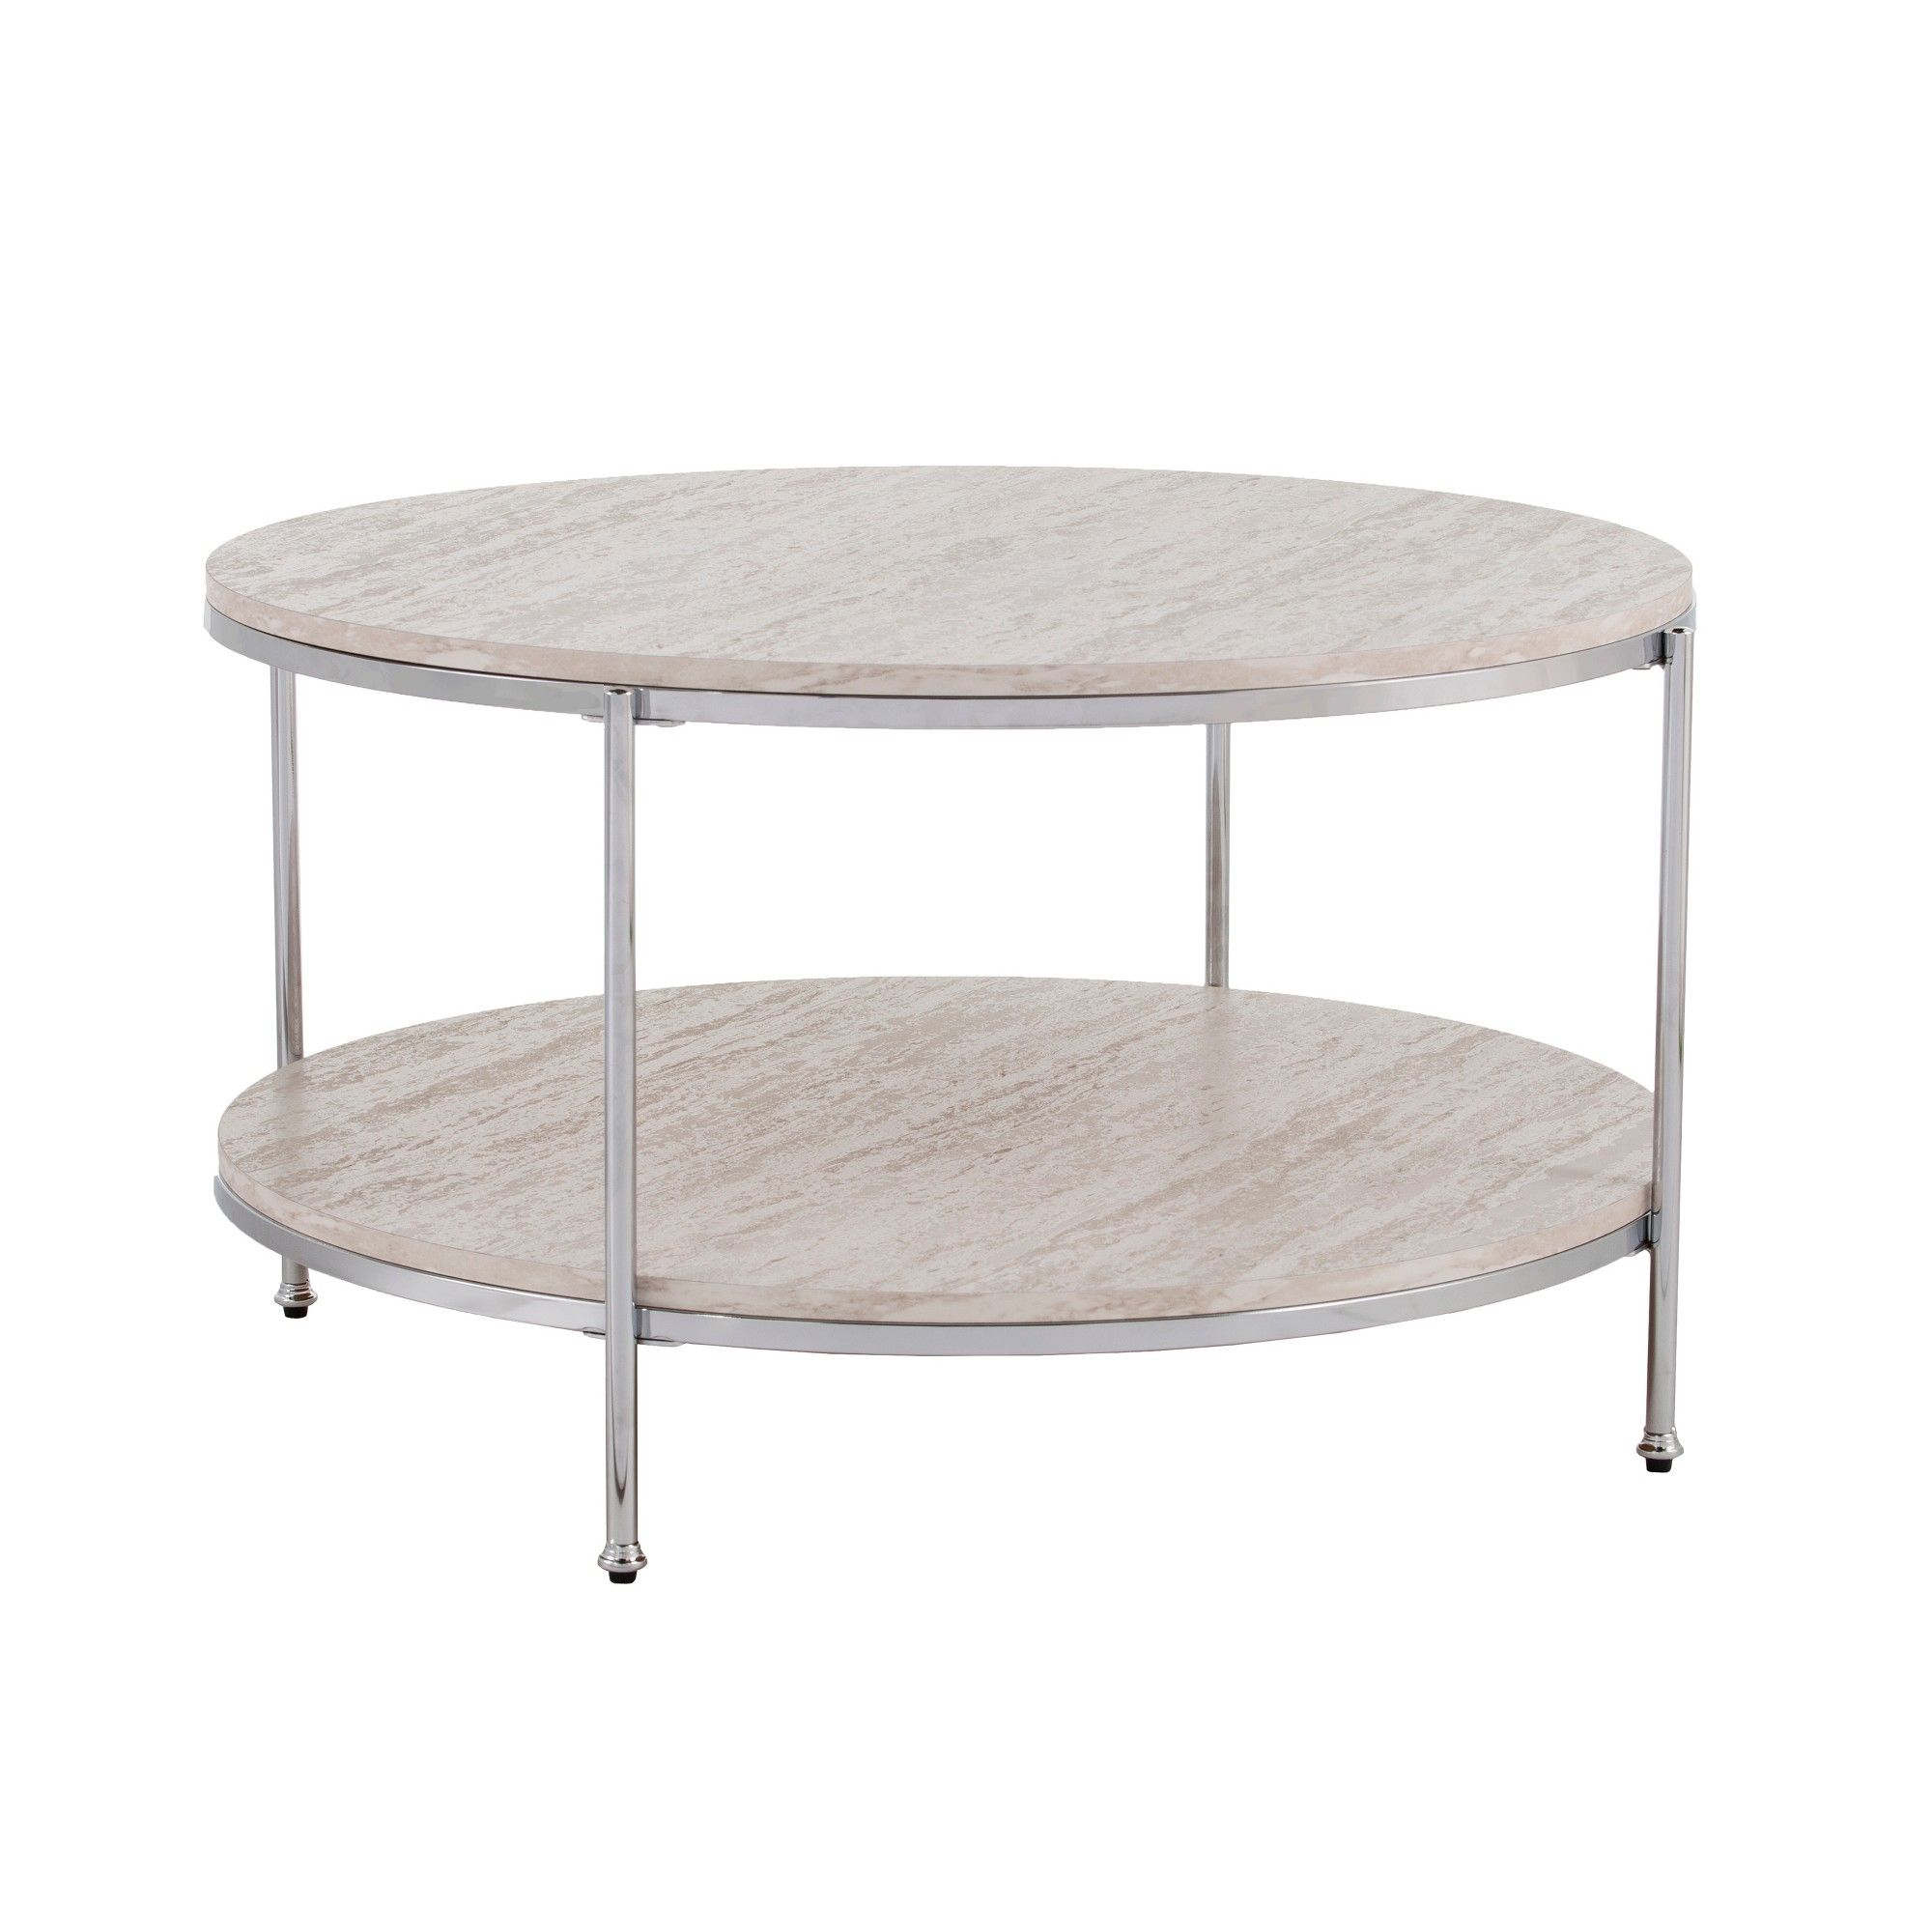 Sula Round Faux Stone Cocktail Table Chrome Aiden Lane Faux Marble Coffee Table Coffee Table Stone Coffee Table [ 2000 x 2000 Pixel ]